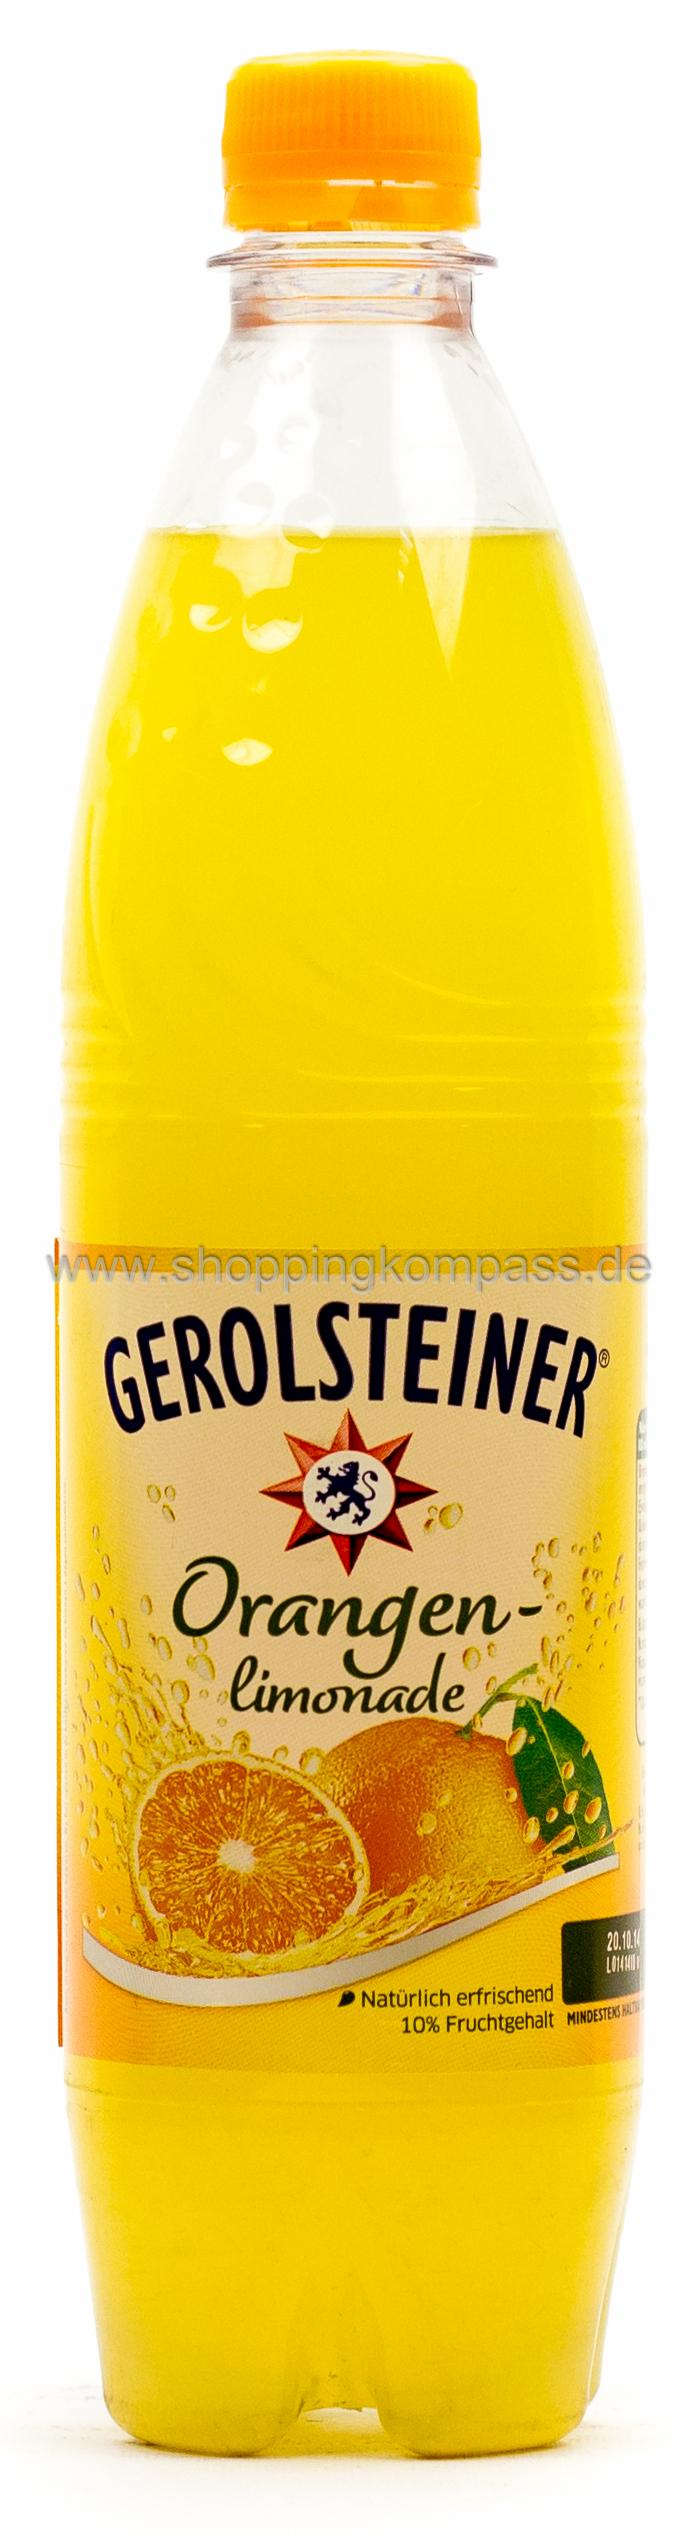 Gerolsteiner Limonade Orange 0,75 l PET Mehrweg